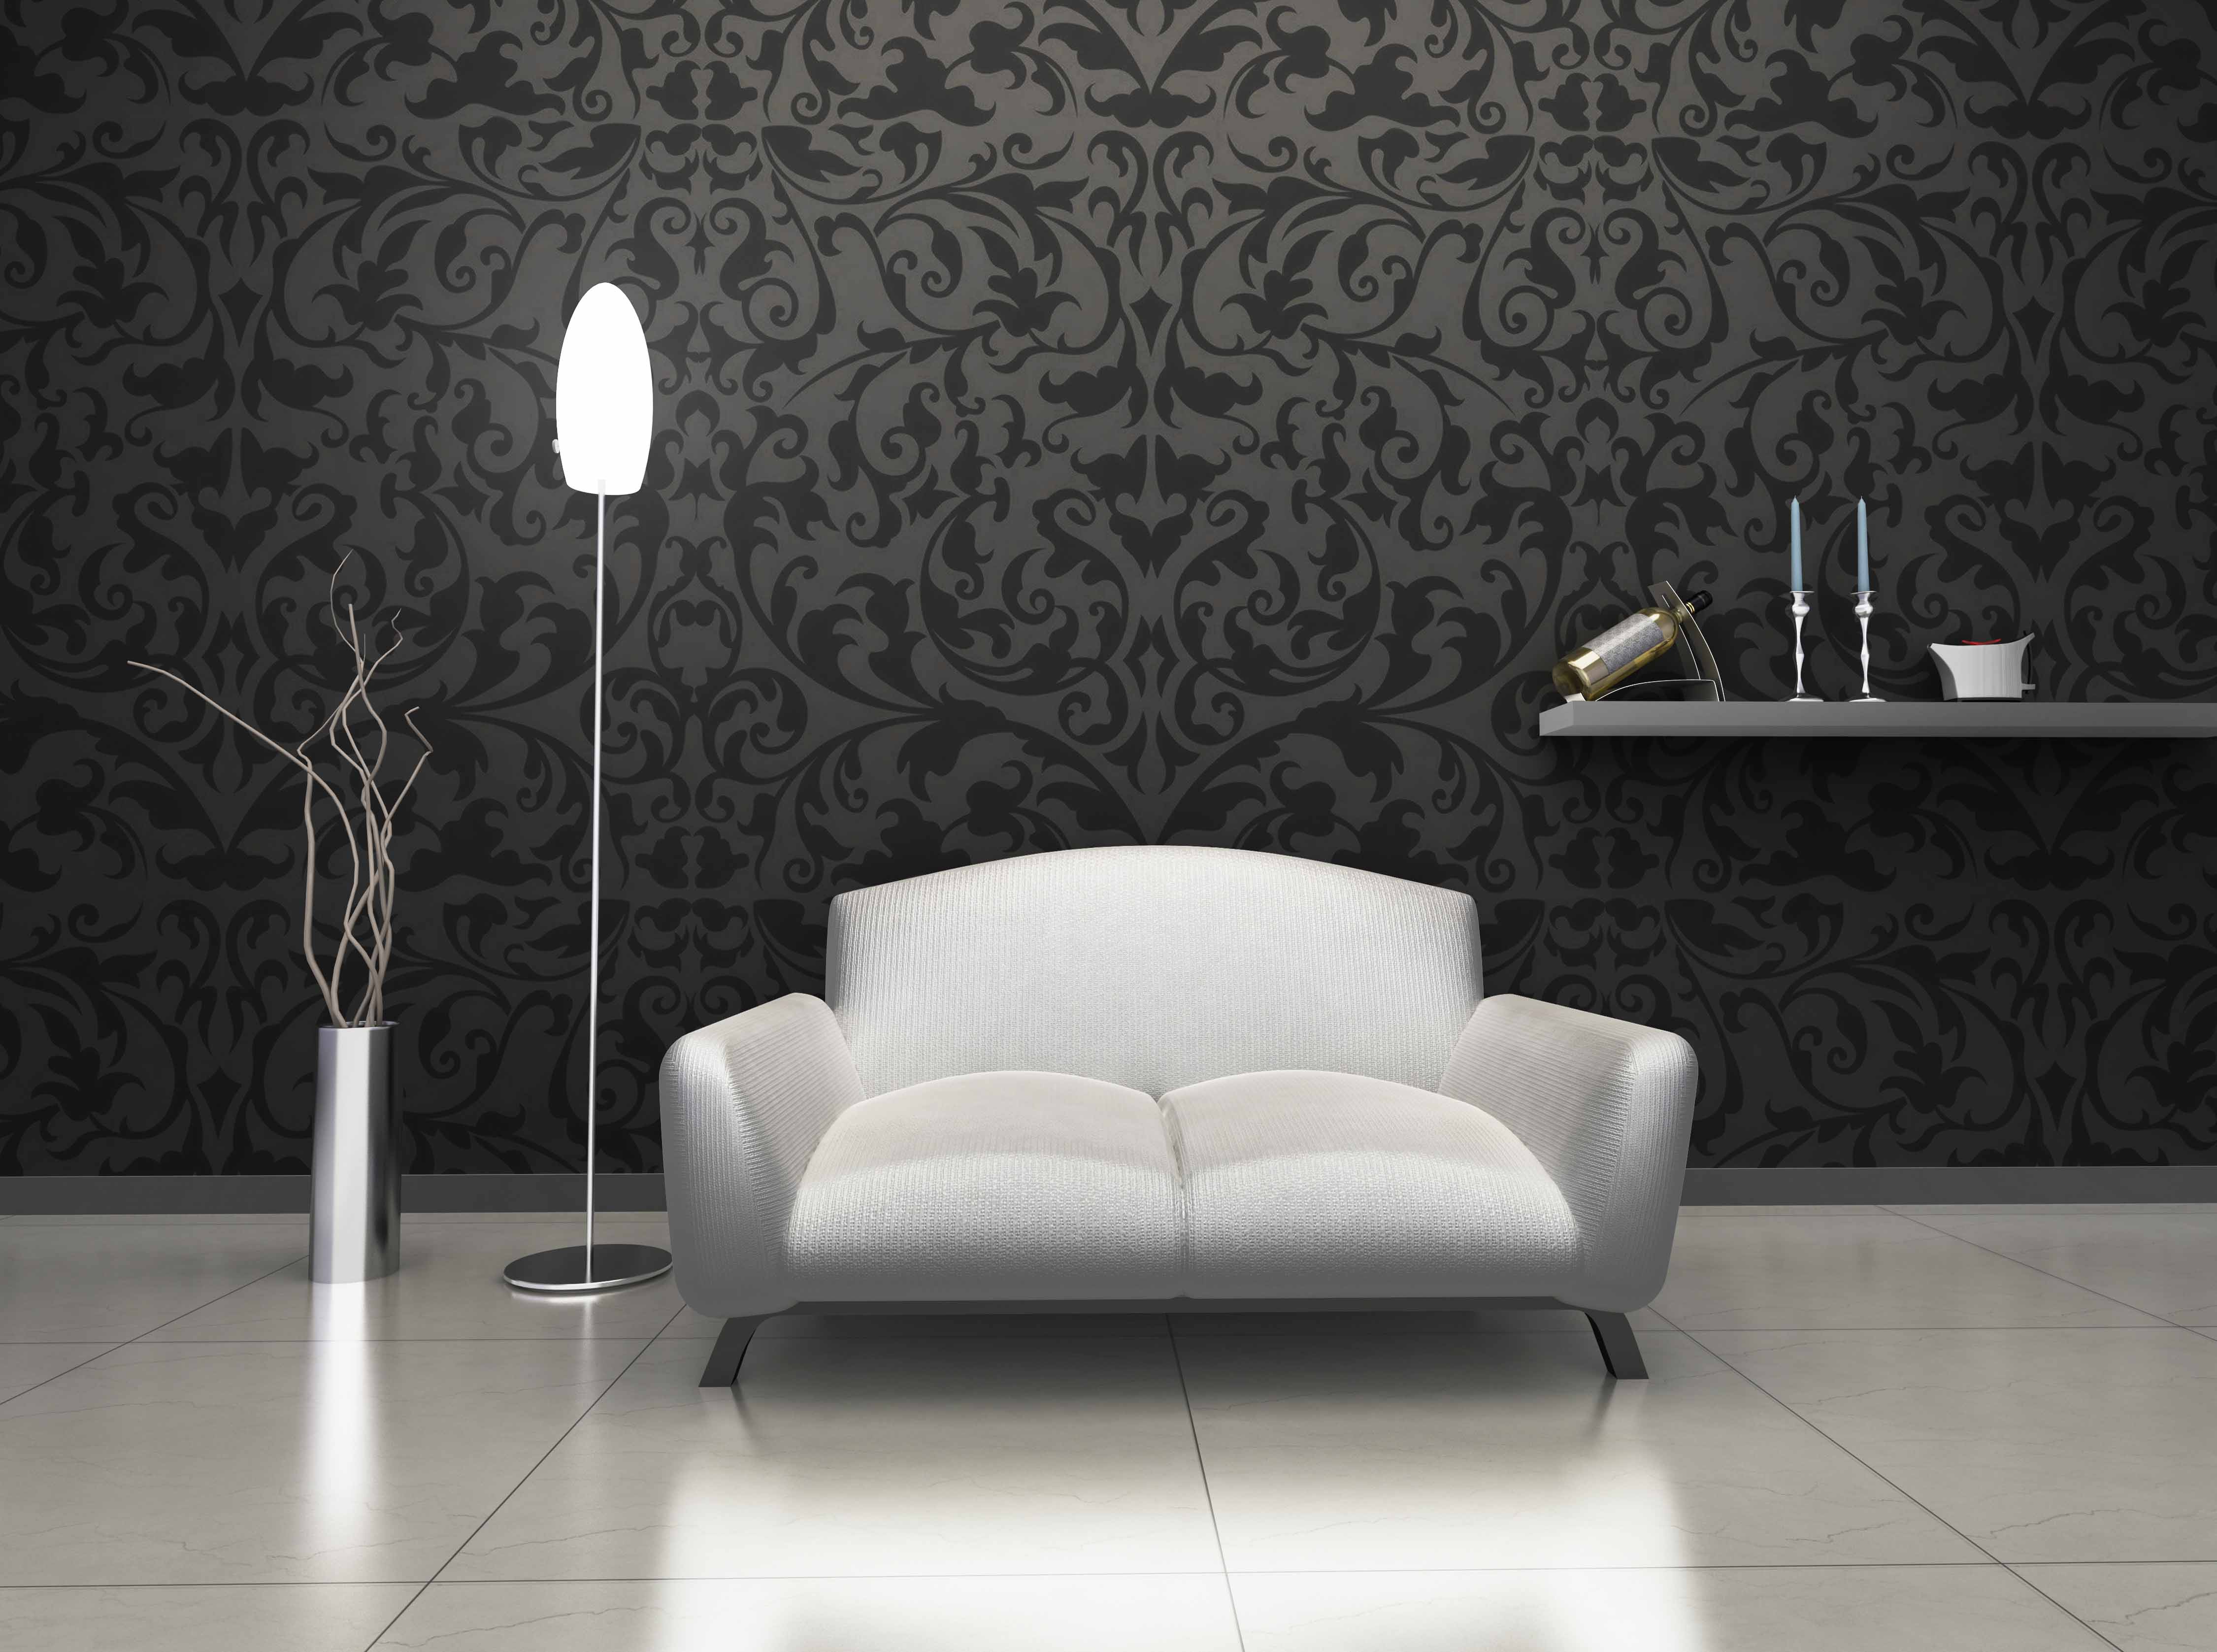 Makeover with Wallpapers   Wallpaper Installation Vancouver BC 4501x3354